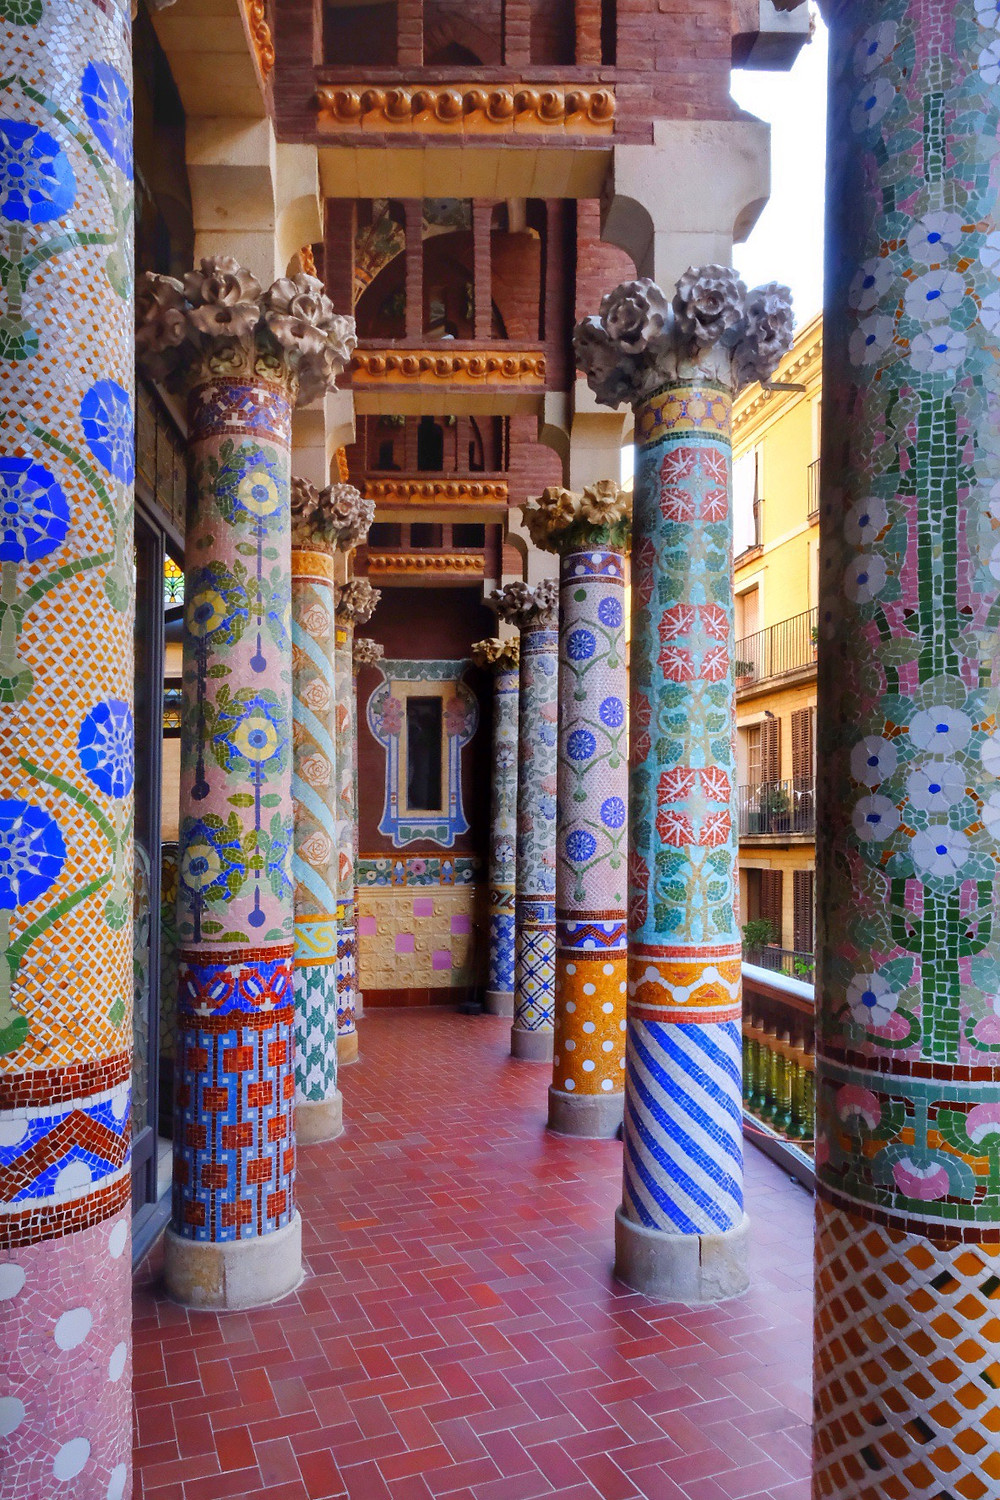 Detailed tile mosaic pillars dominate the space with art and colour